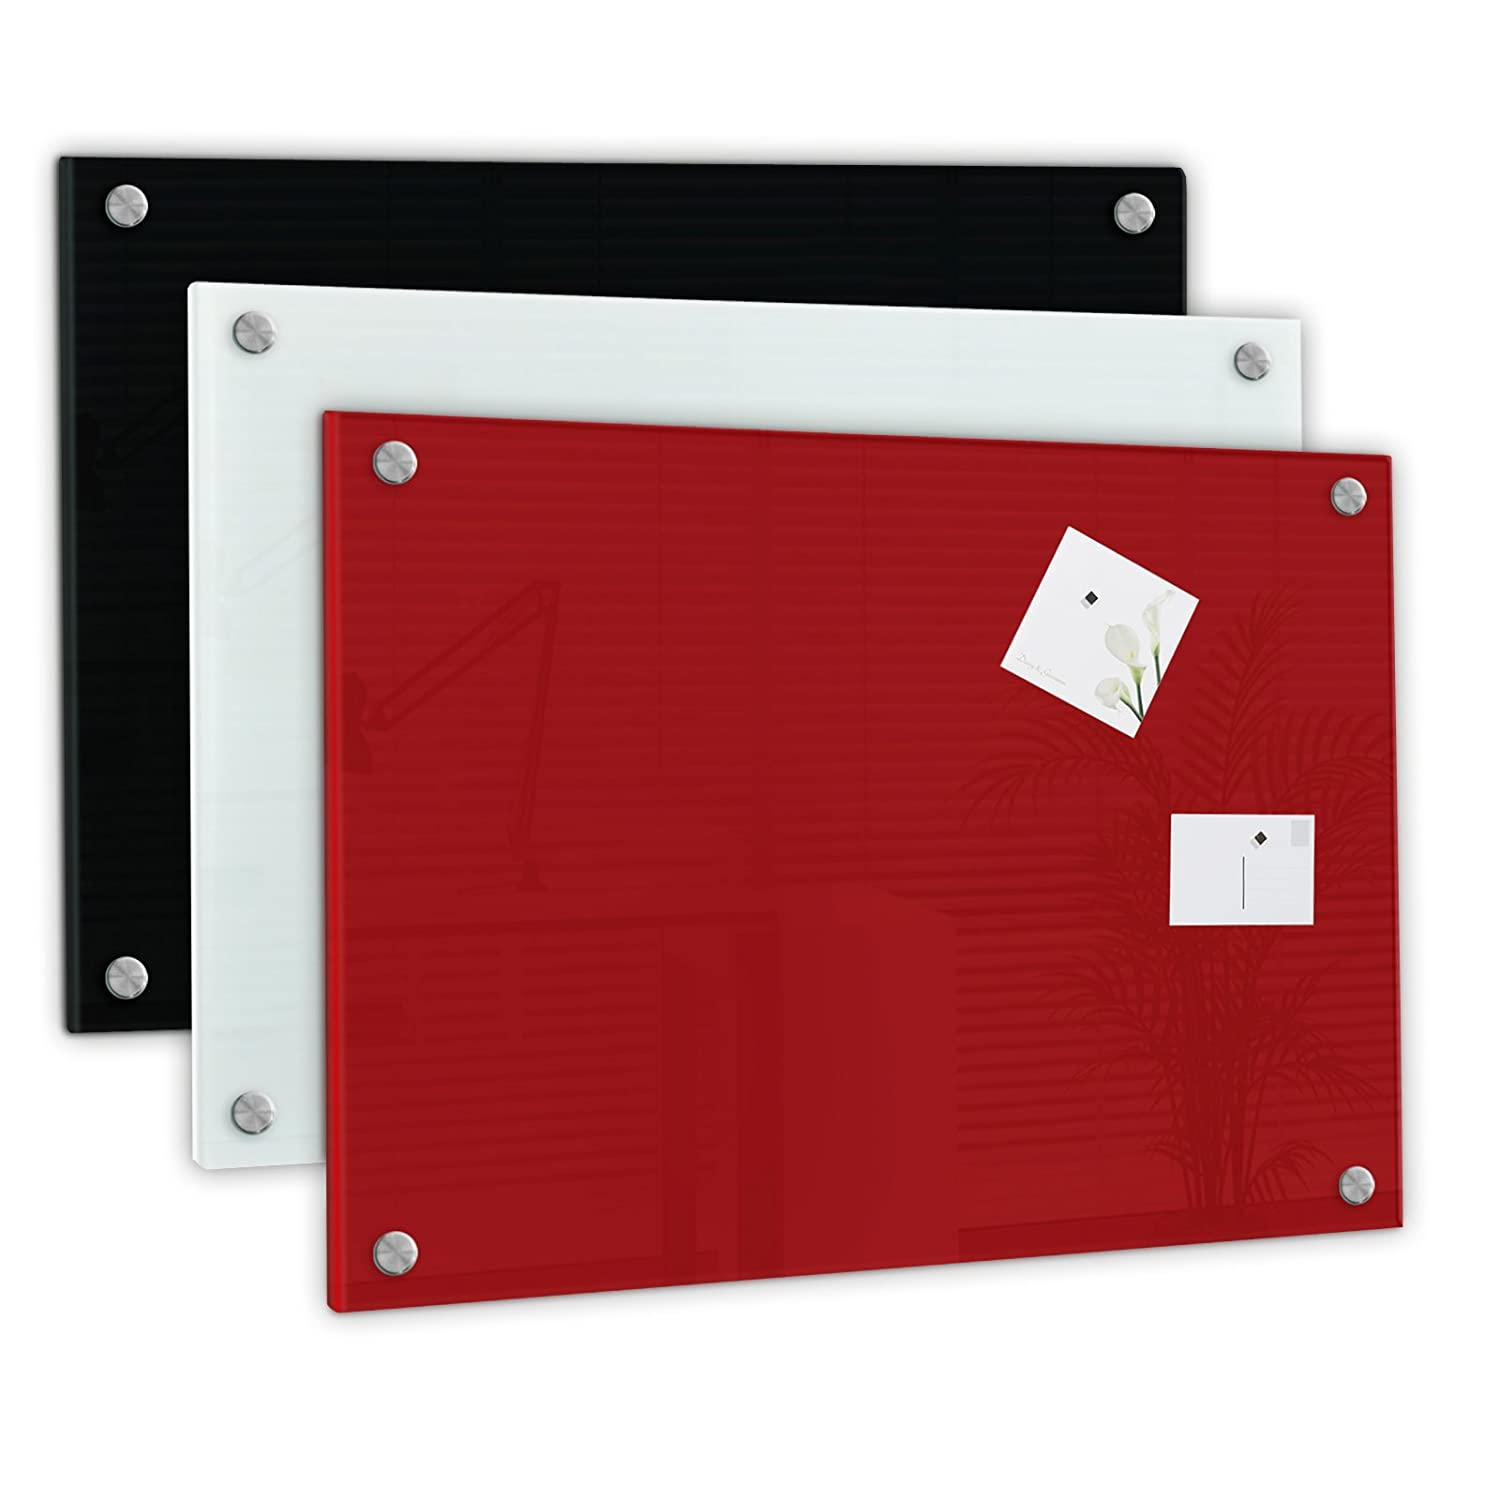 rot Magnete Stift 40x60cm //Farbe Glas Magnettafel Memoboard Pinwand incl